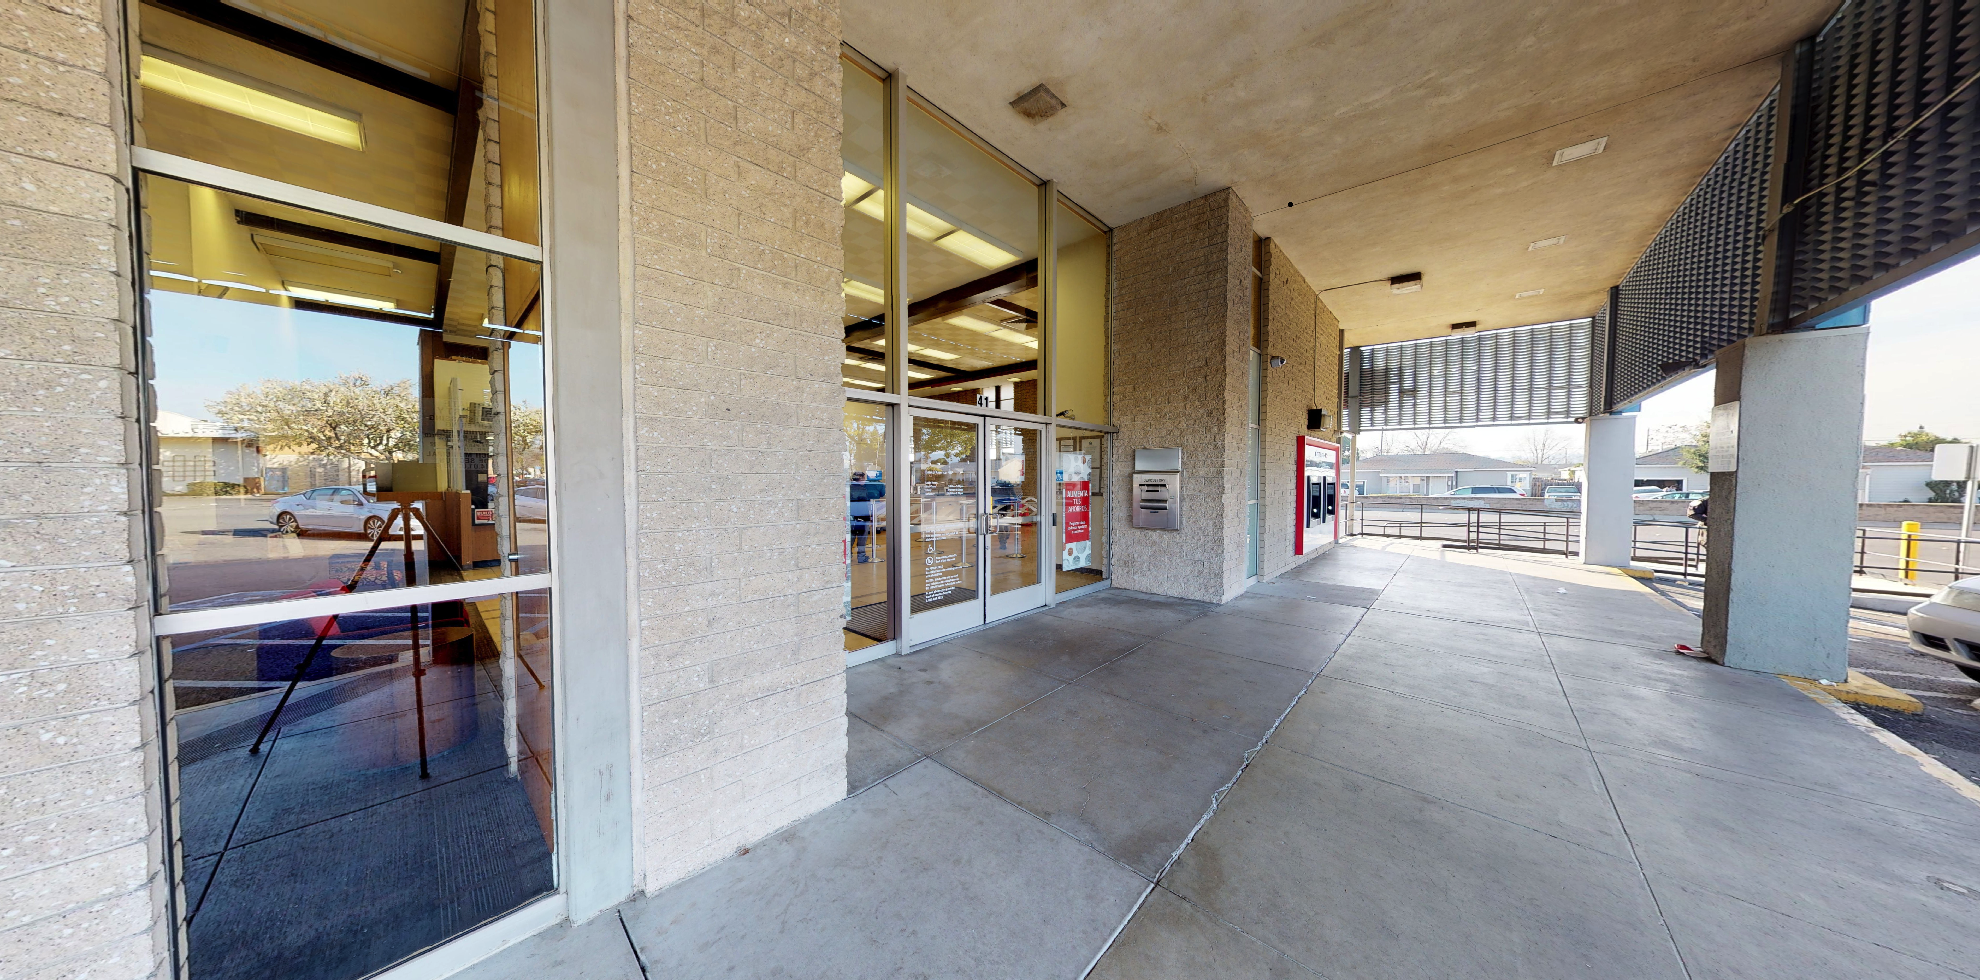 Bank of America financial center with walk-up ATM | 41 E 18th St, Antioch, CA 94509